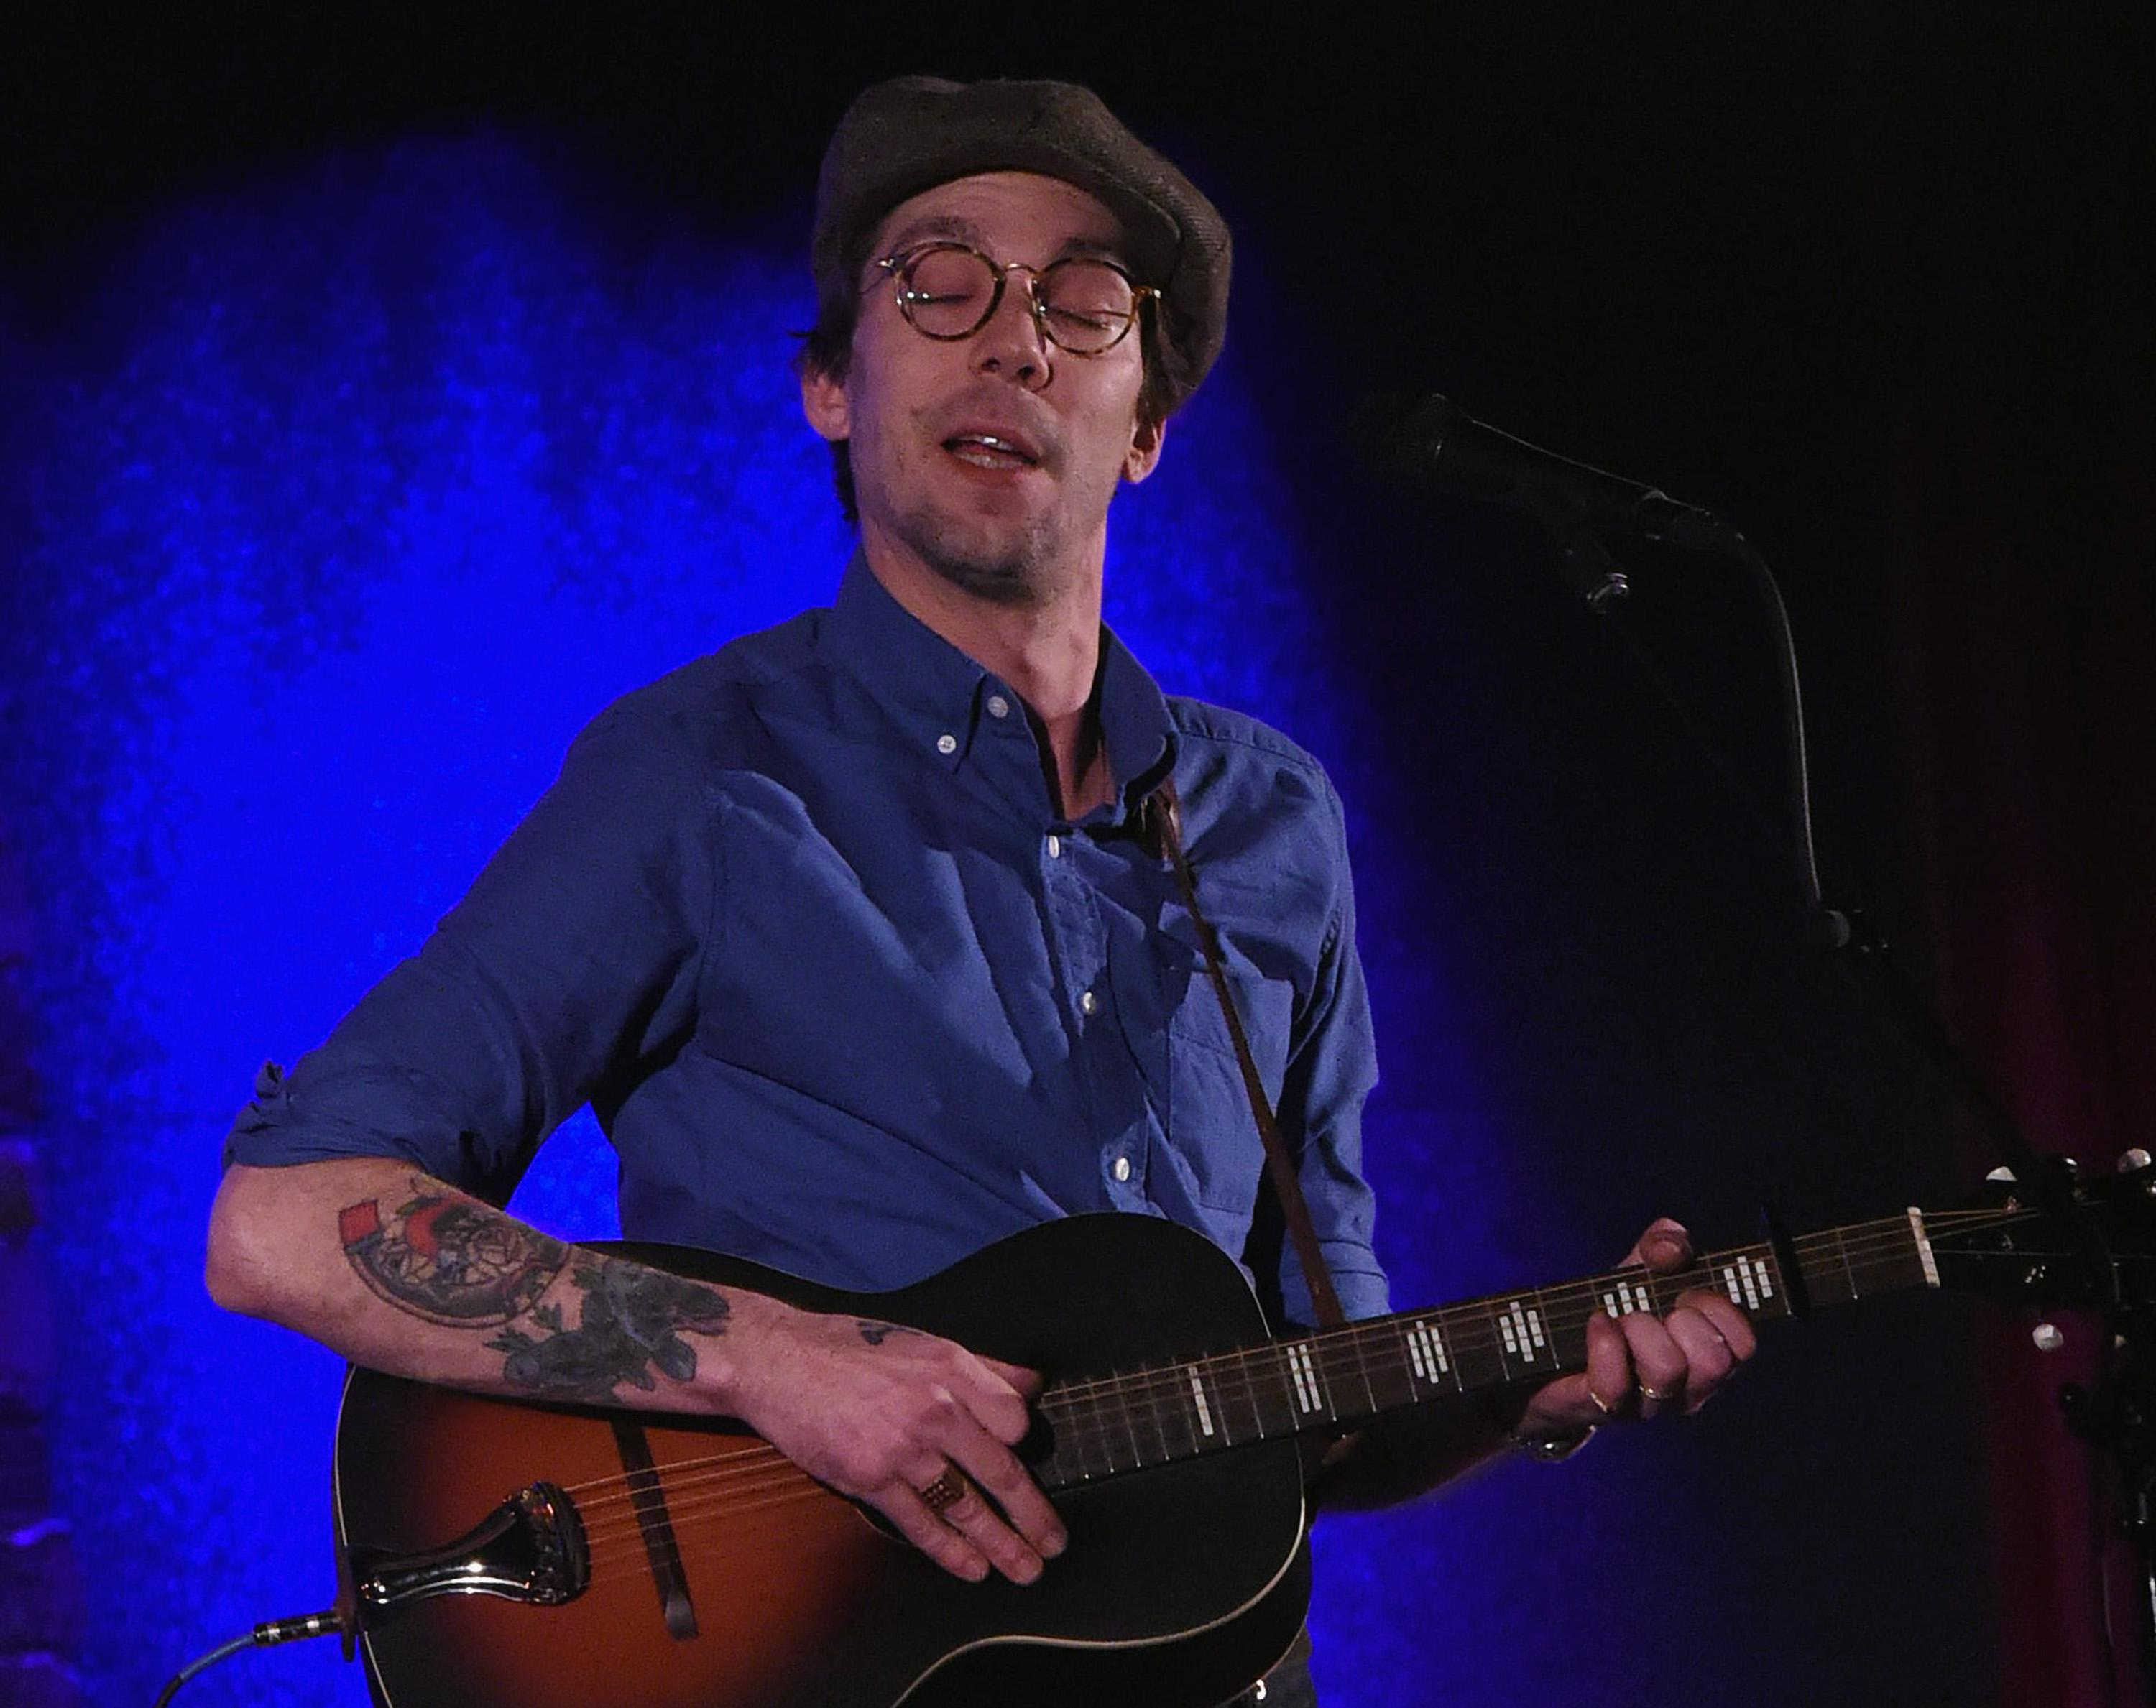 Justin Townes Earle, American singer-songwriter, dead at age 38